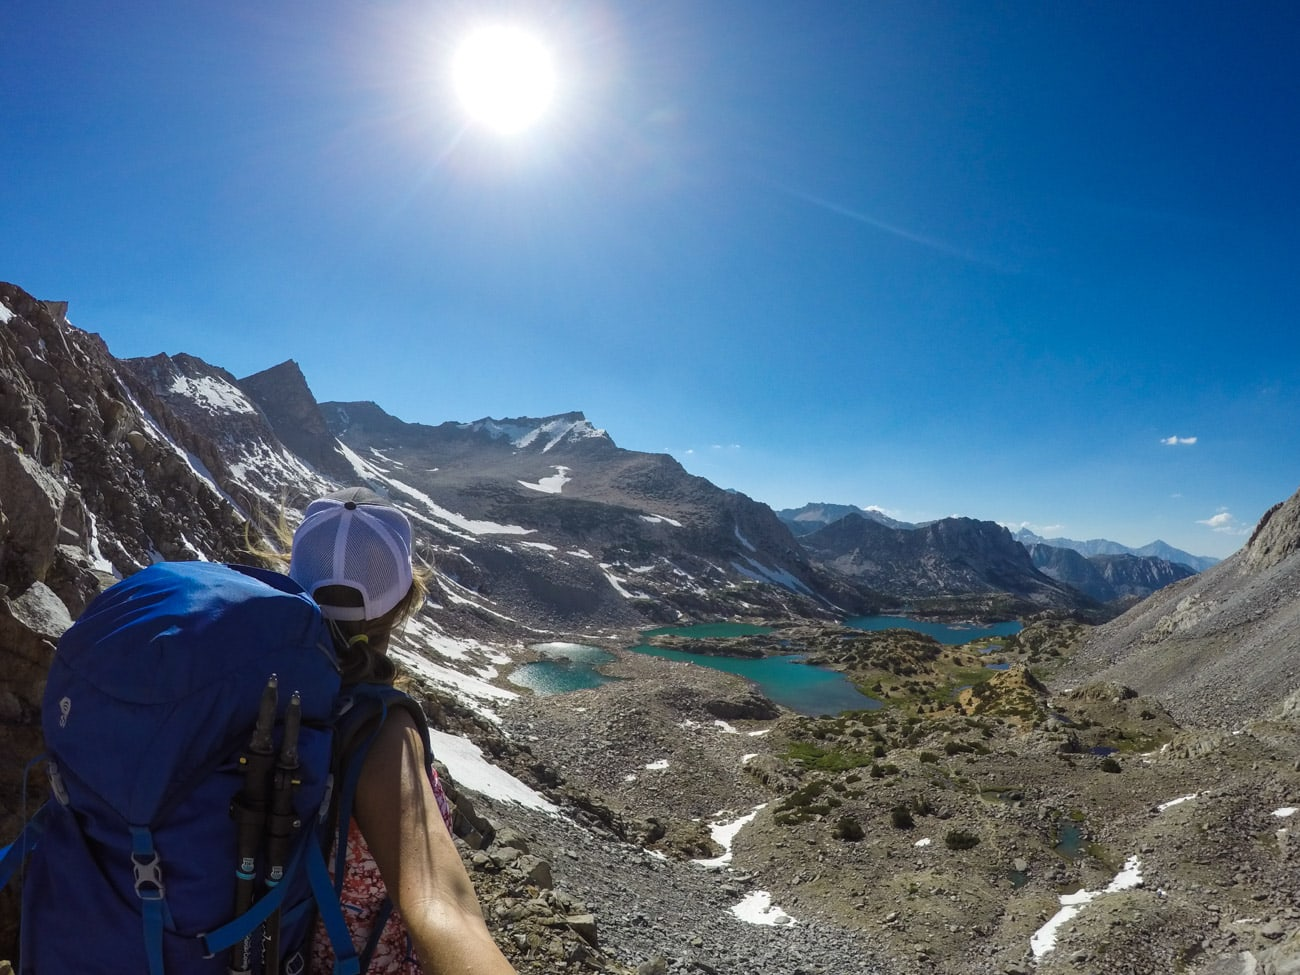 Get all the info - routes, campsites, permits, gear & more - for a weekend backpacking trip over Bishop Pass to Dusy Basin Lakes in the eastern Sierras.